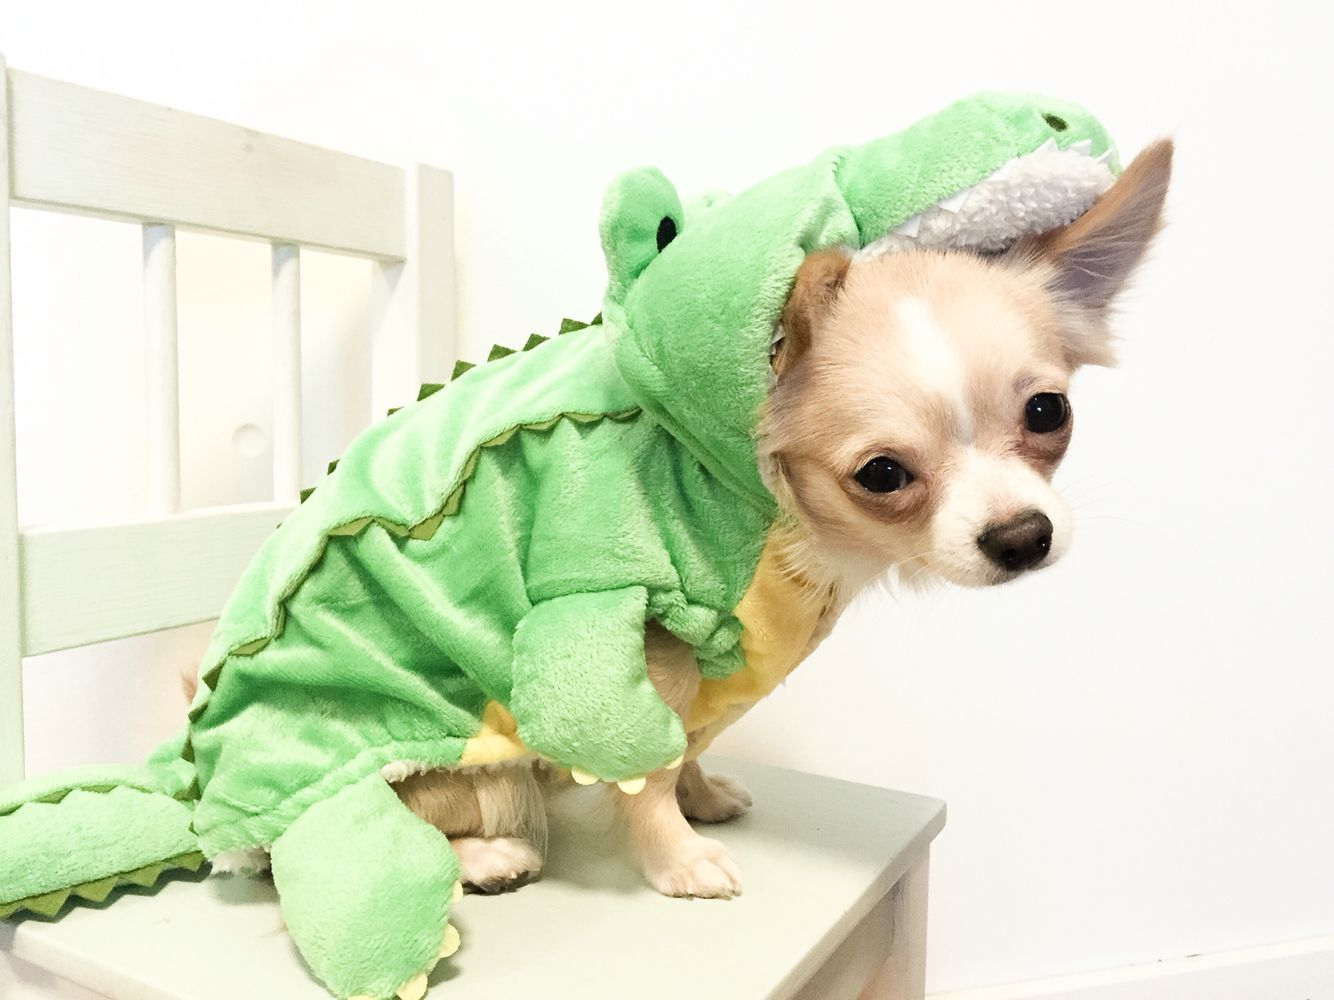 Bailey in his crocodile costume #chihuahua #longhaired #dog #dogcostume & Bailey in his crocodile costume #chihuahua #longhaired #dog ...